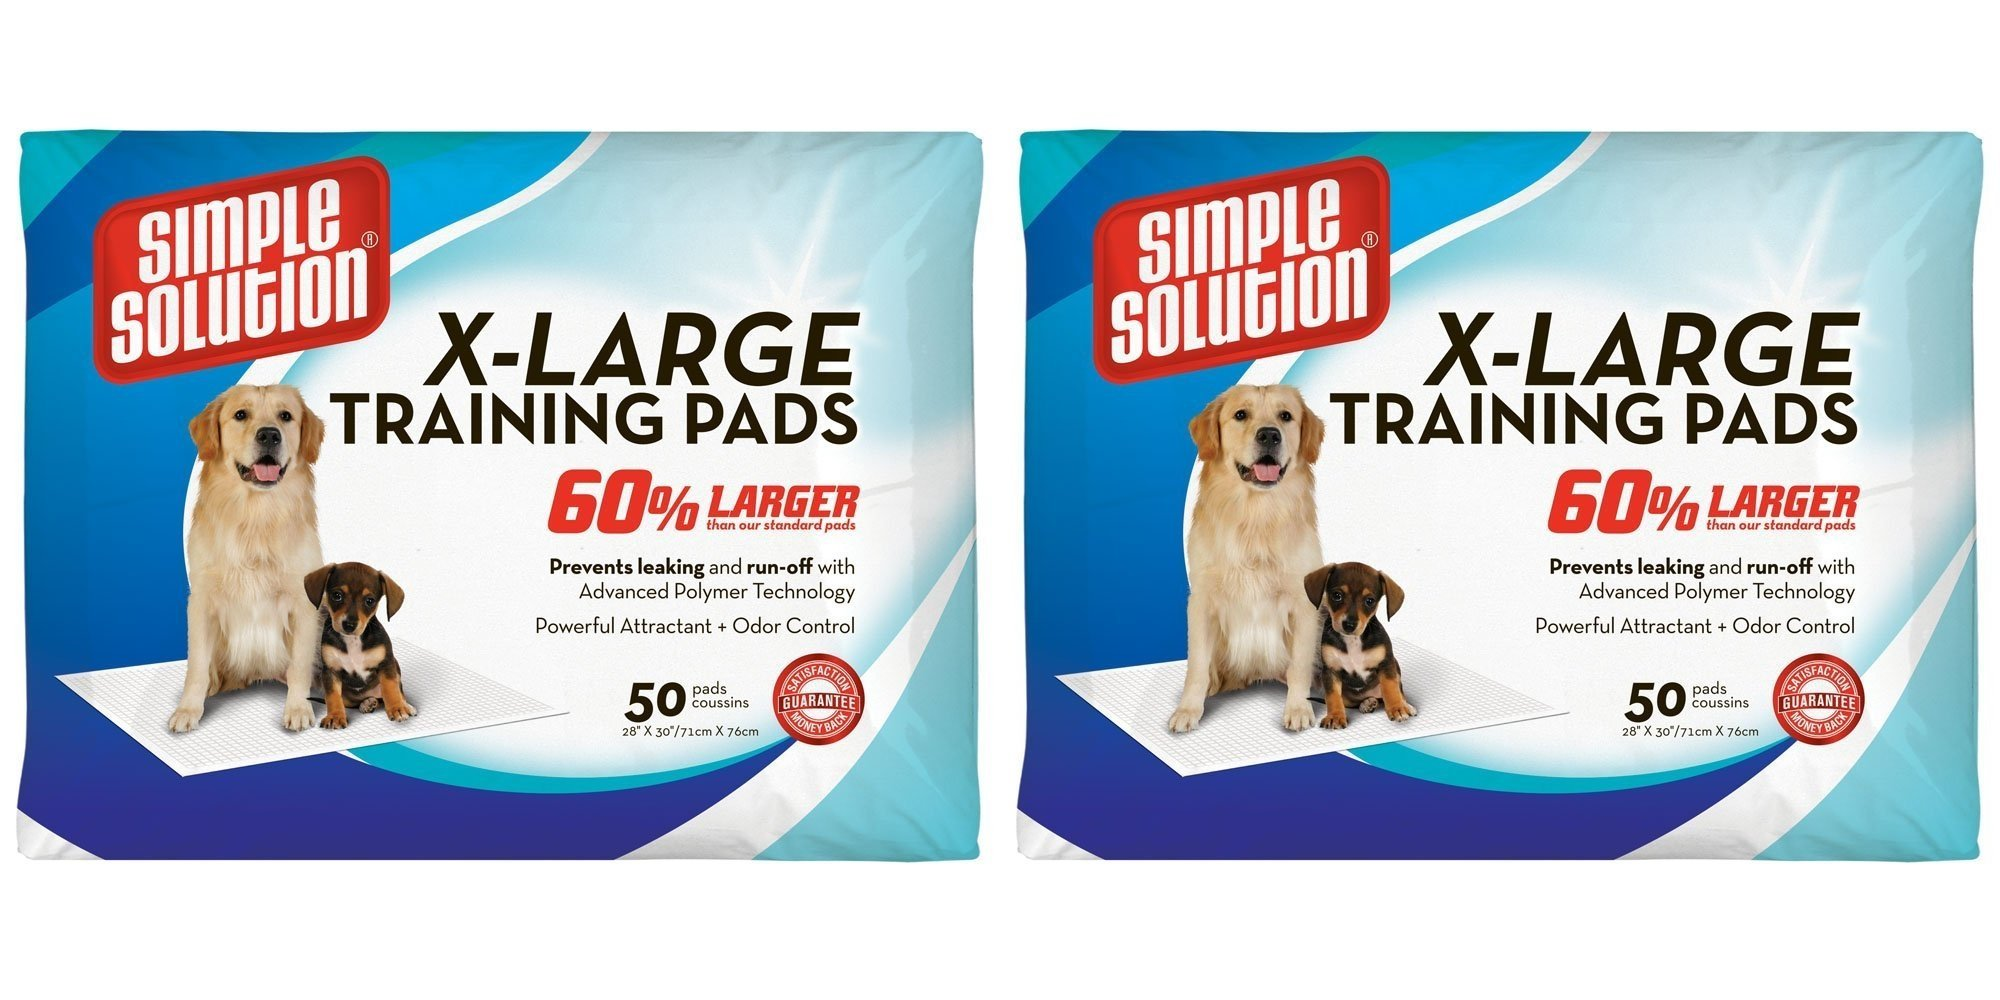 Simple Solution Training Pads, 100 Pads, Extra Large by Simple Solution